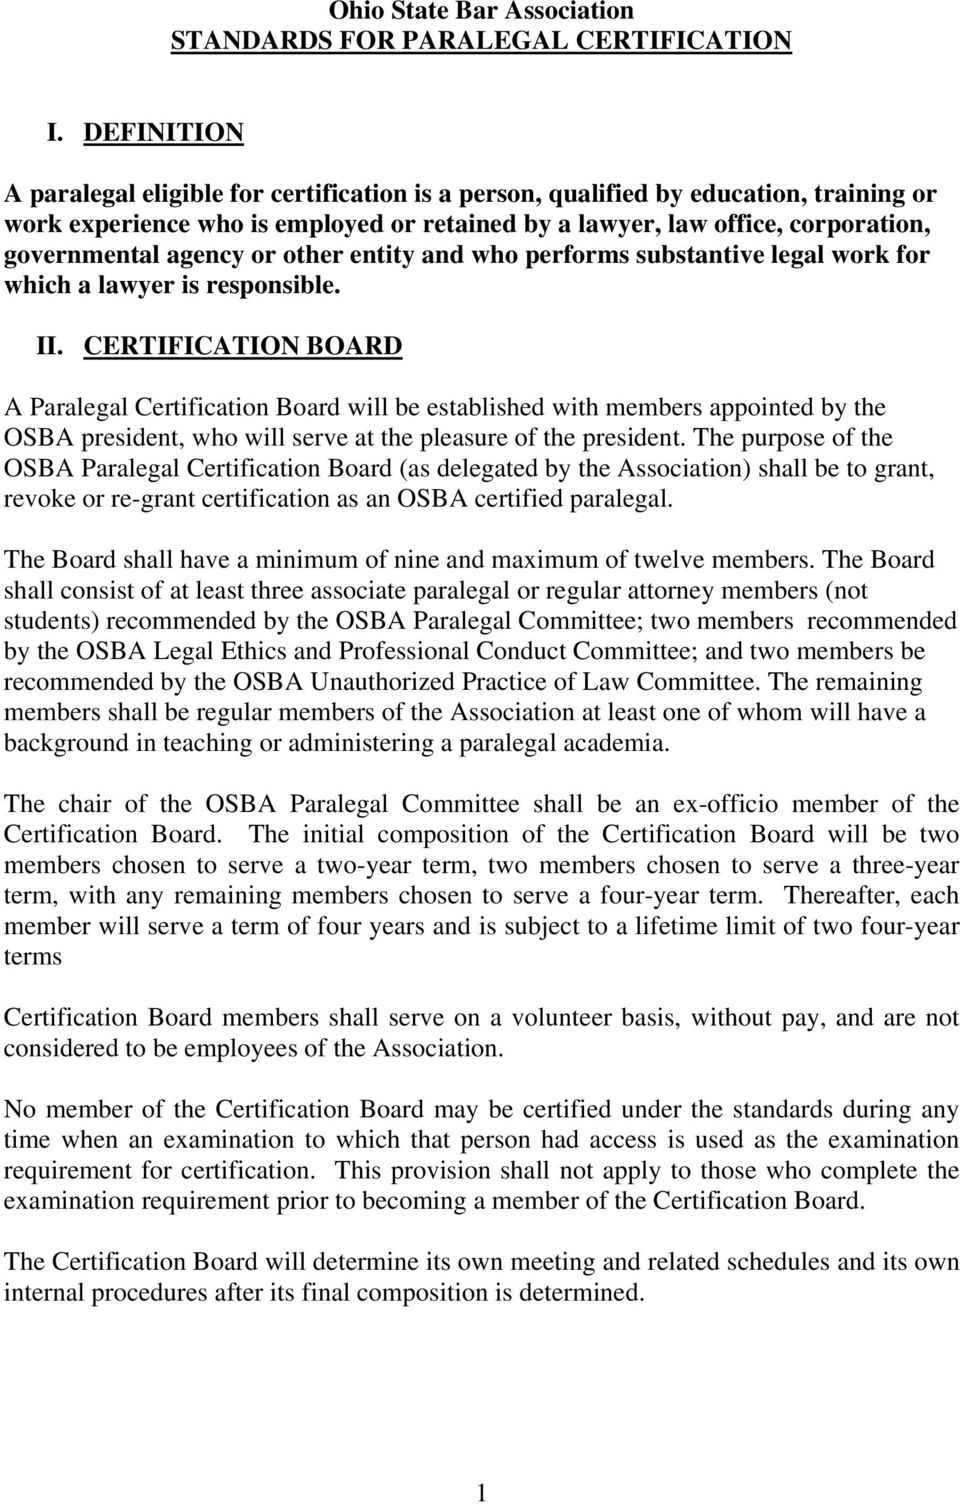 Ohio State Bar Association Standards For Paralegal Certification Pdf